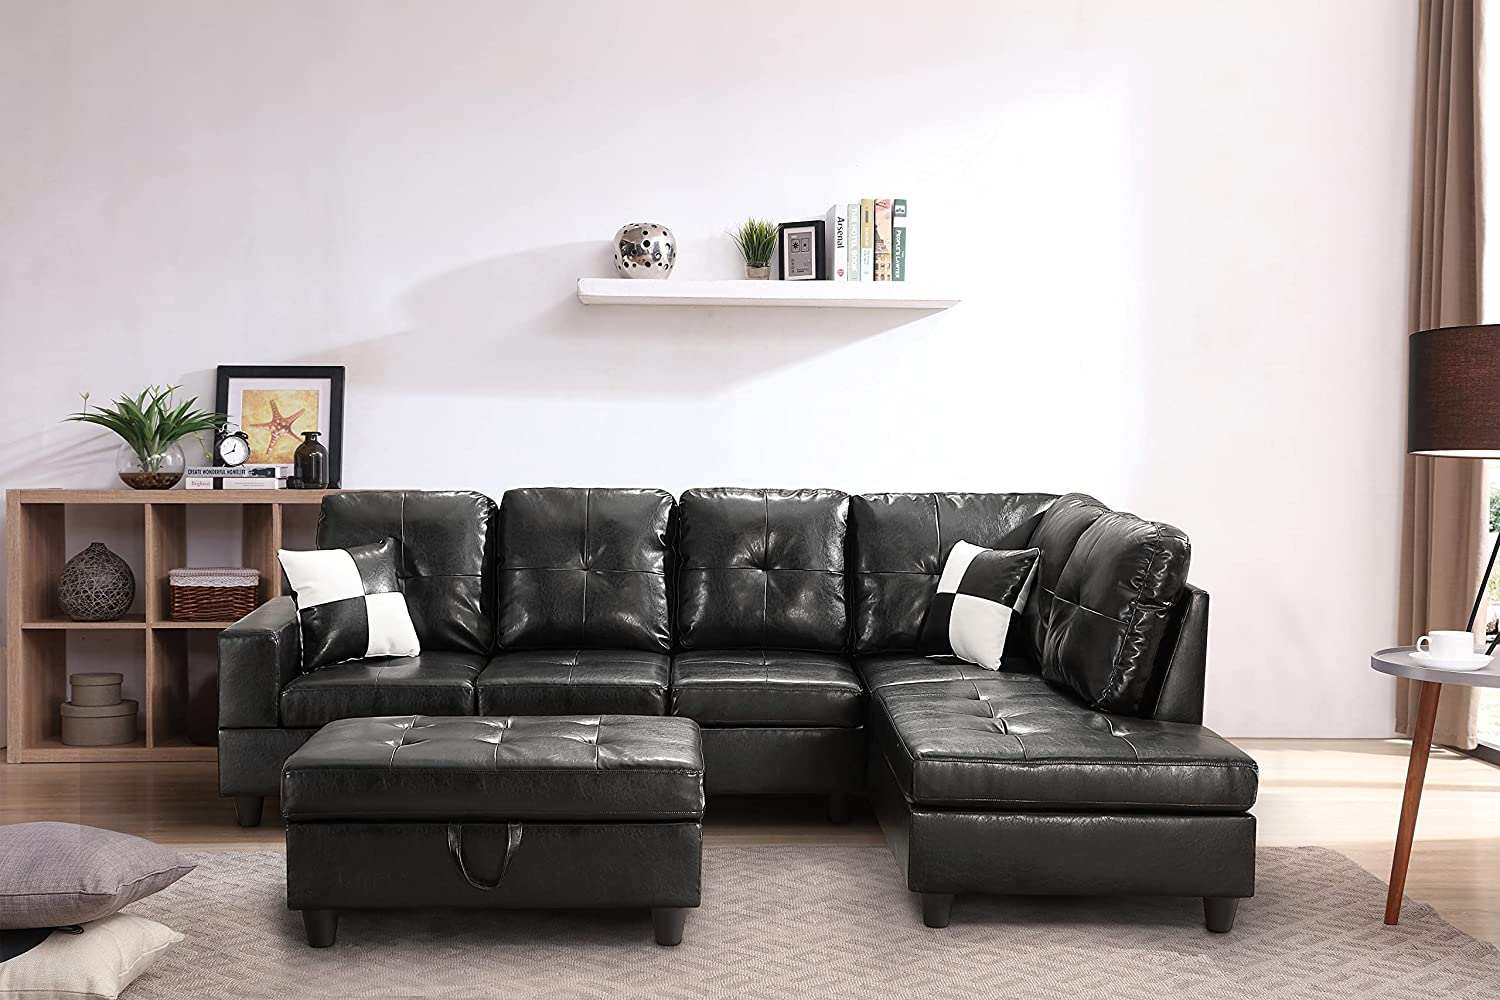 GAOPAN Home Sectional Set Faux Leather Tufted Cushions Living Room, 5 Seats Sofa Couch with Reversible Right Chaise Lounge and Storage Ottoman, Black